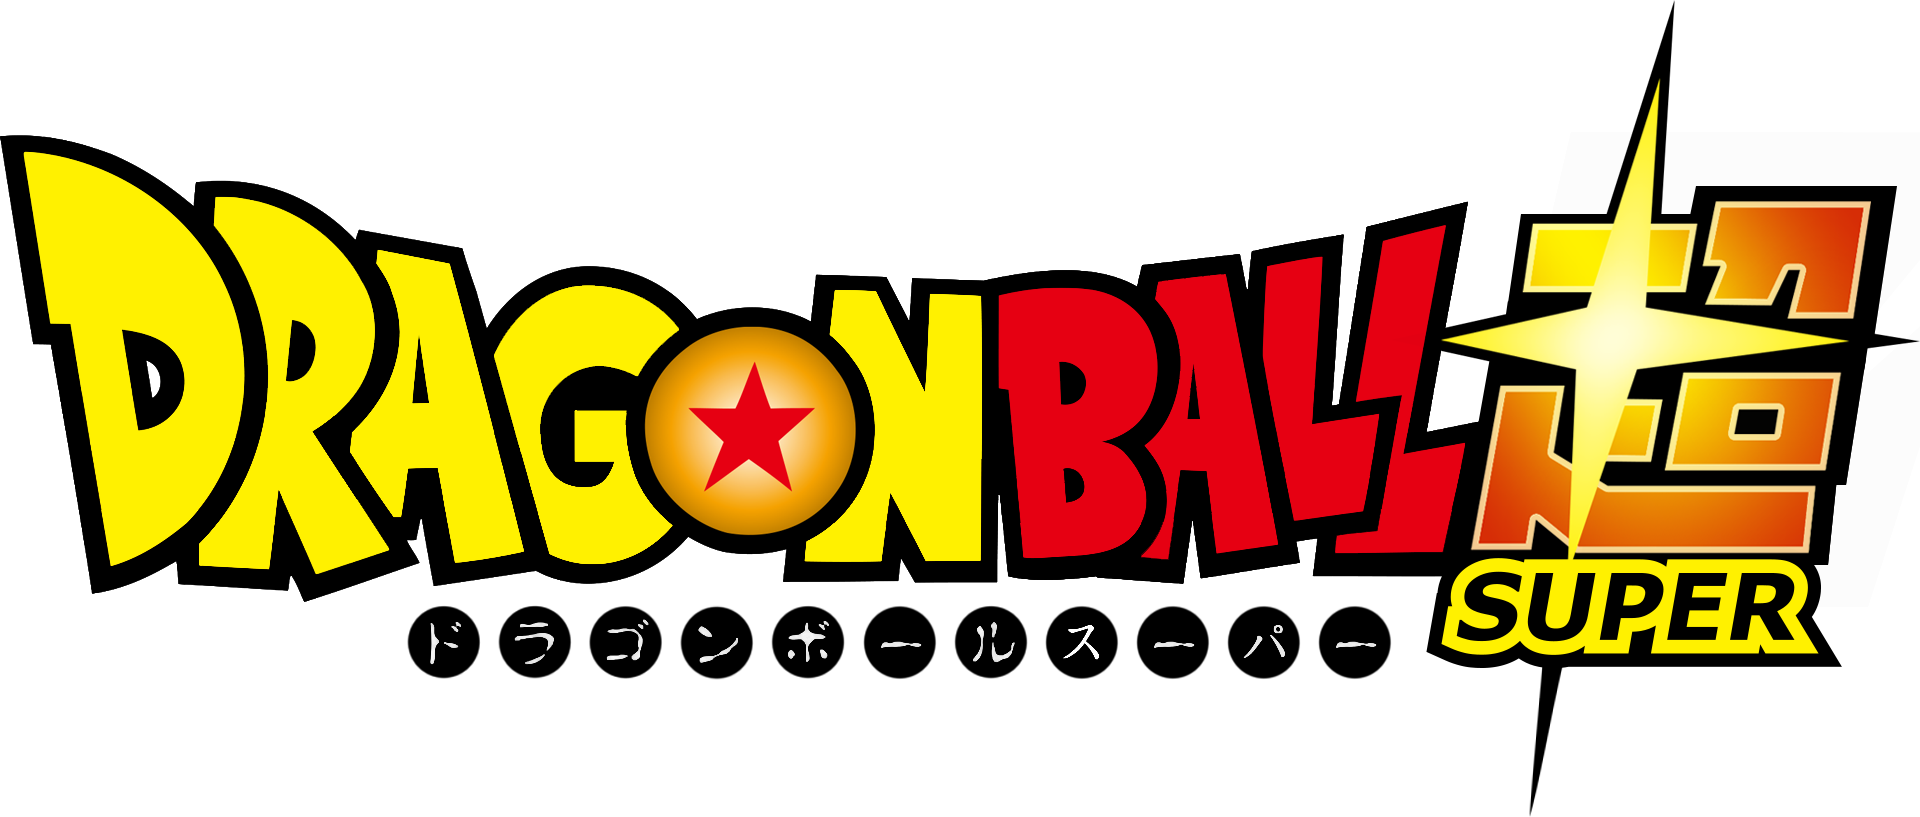 [MANGA] Dragon Ball Super - Todos los capitulos